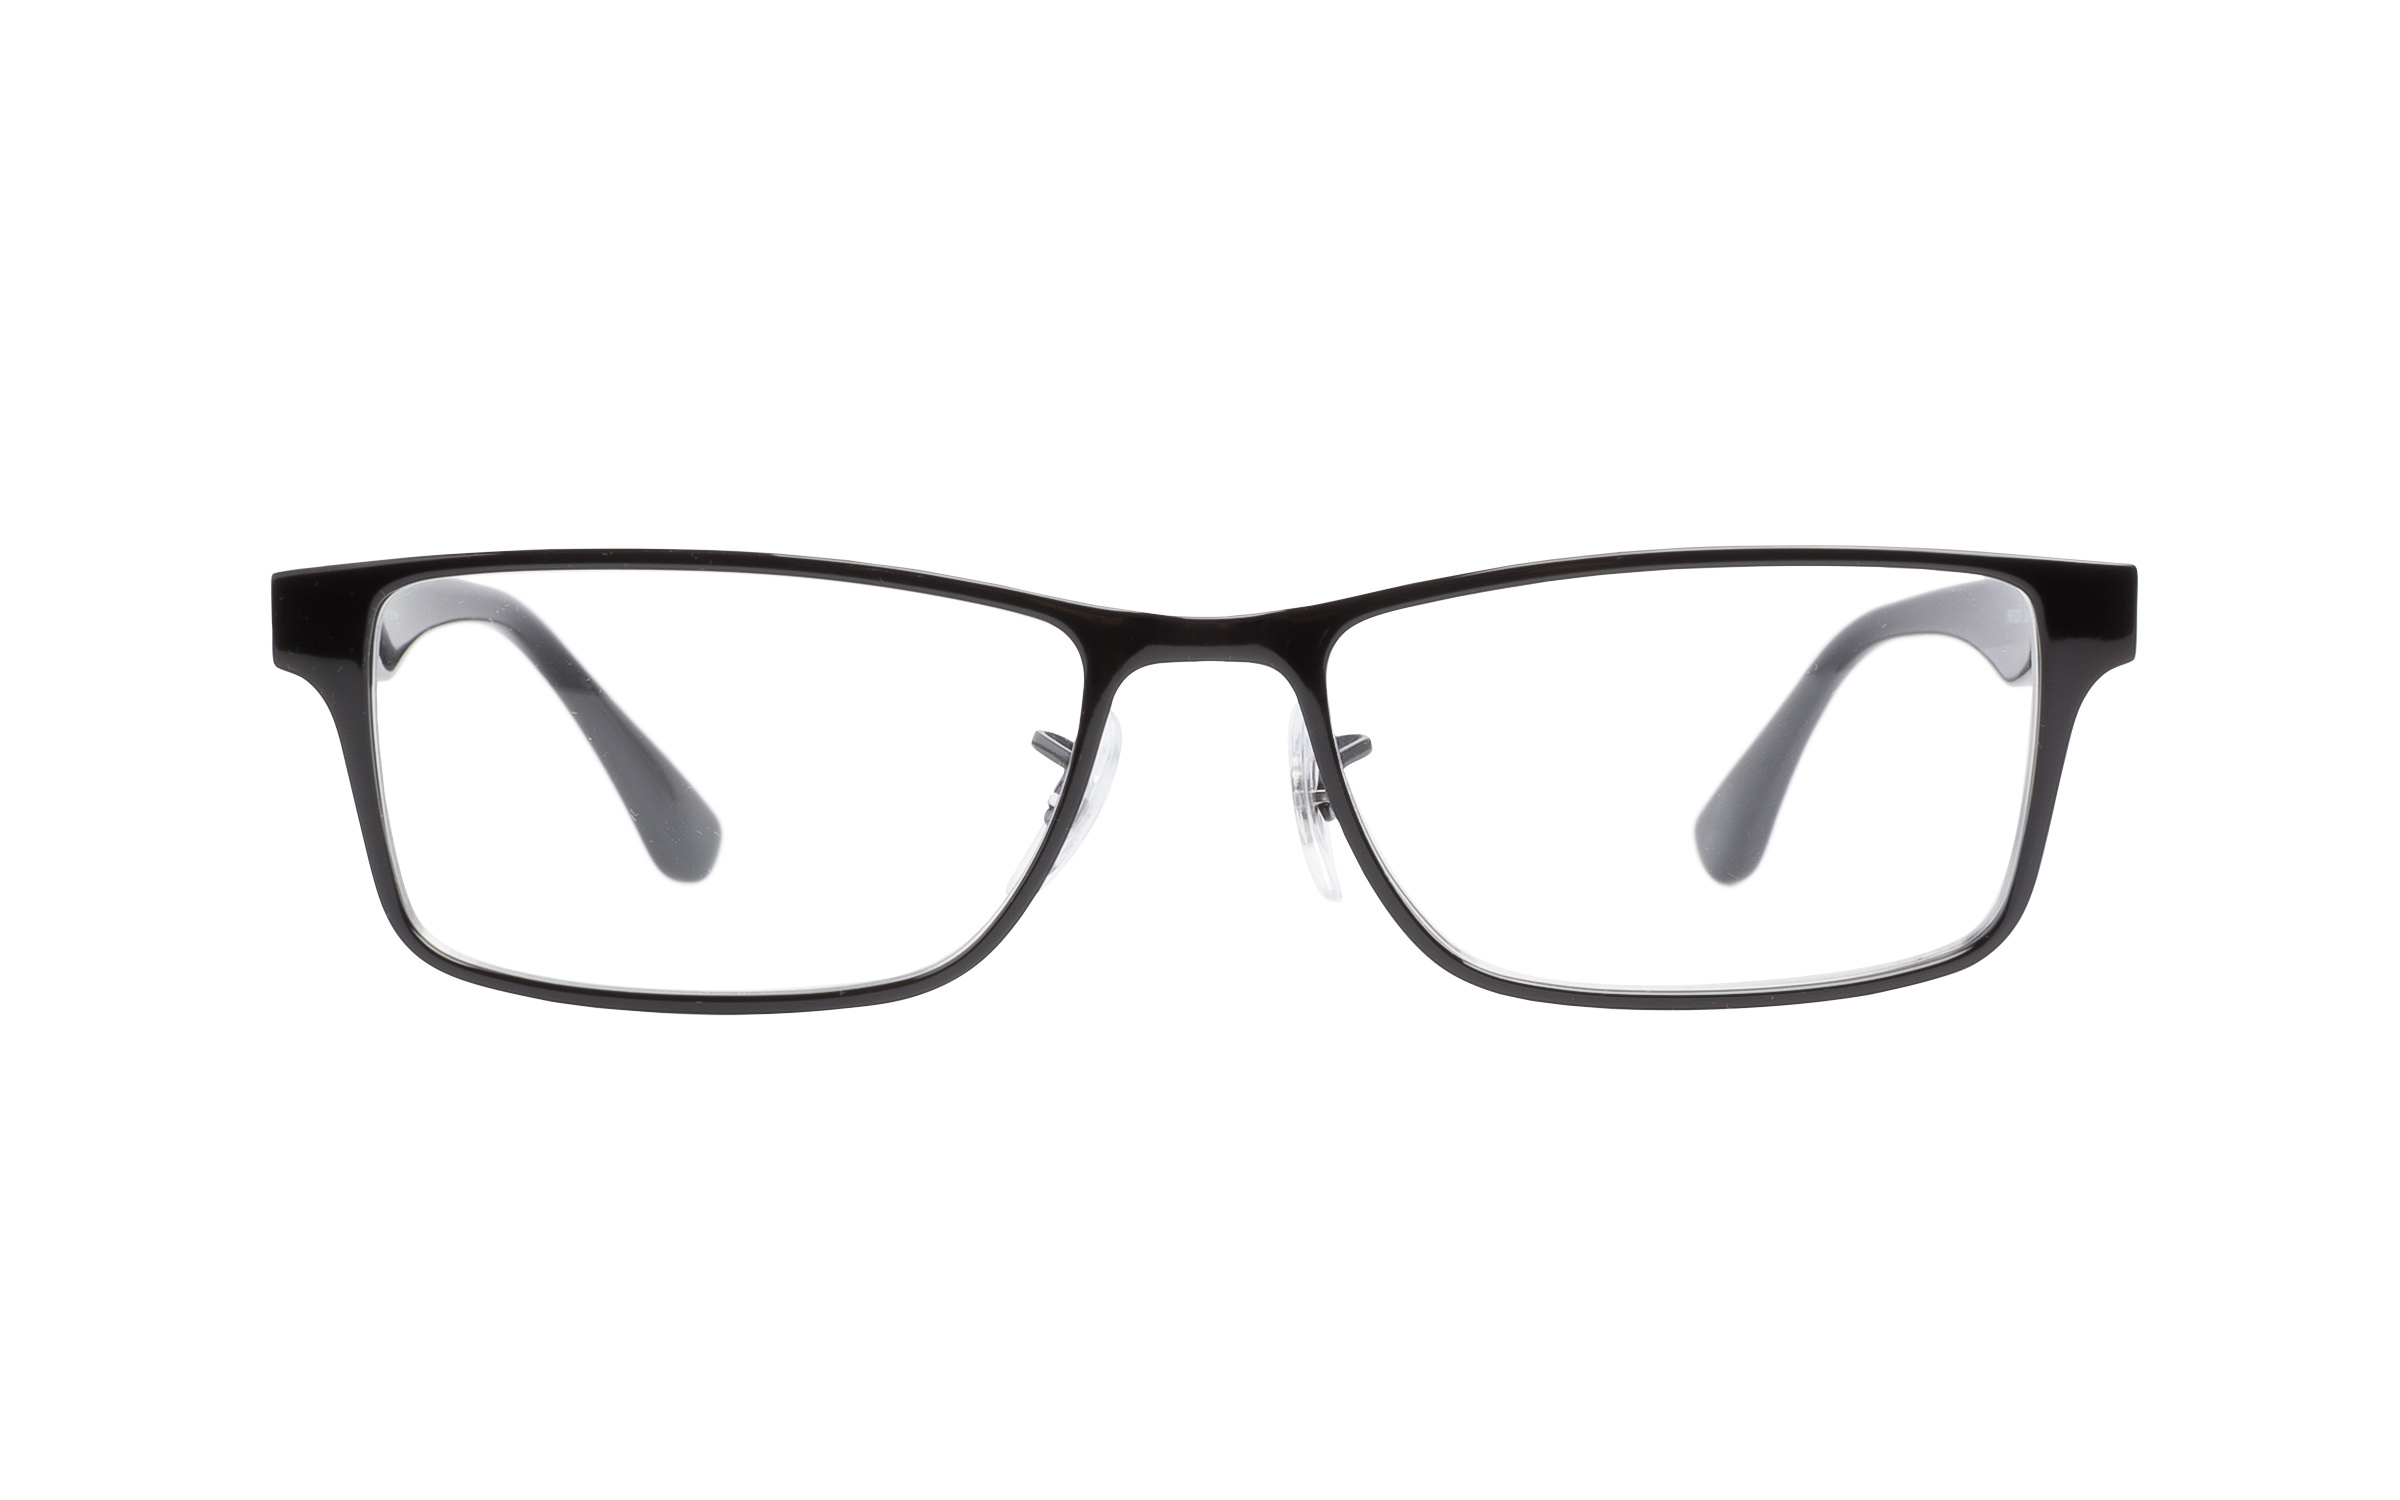 Luxottica Ray-Ban RB6238 2509 Eyeglasses and Frame in Shiny Black | Metal - Online Coastal